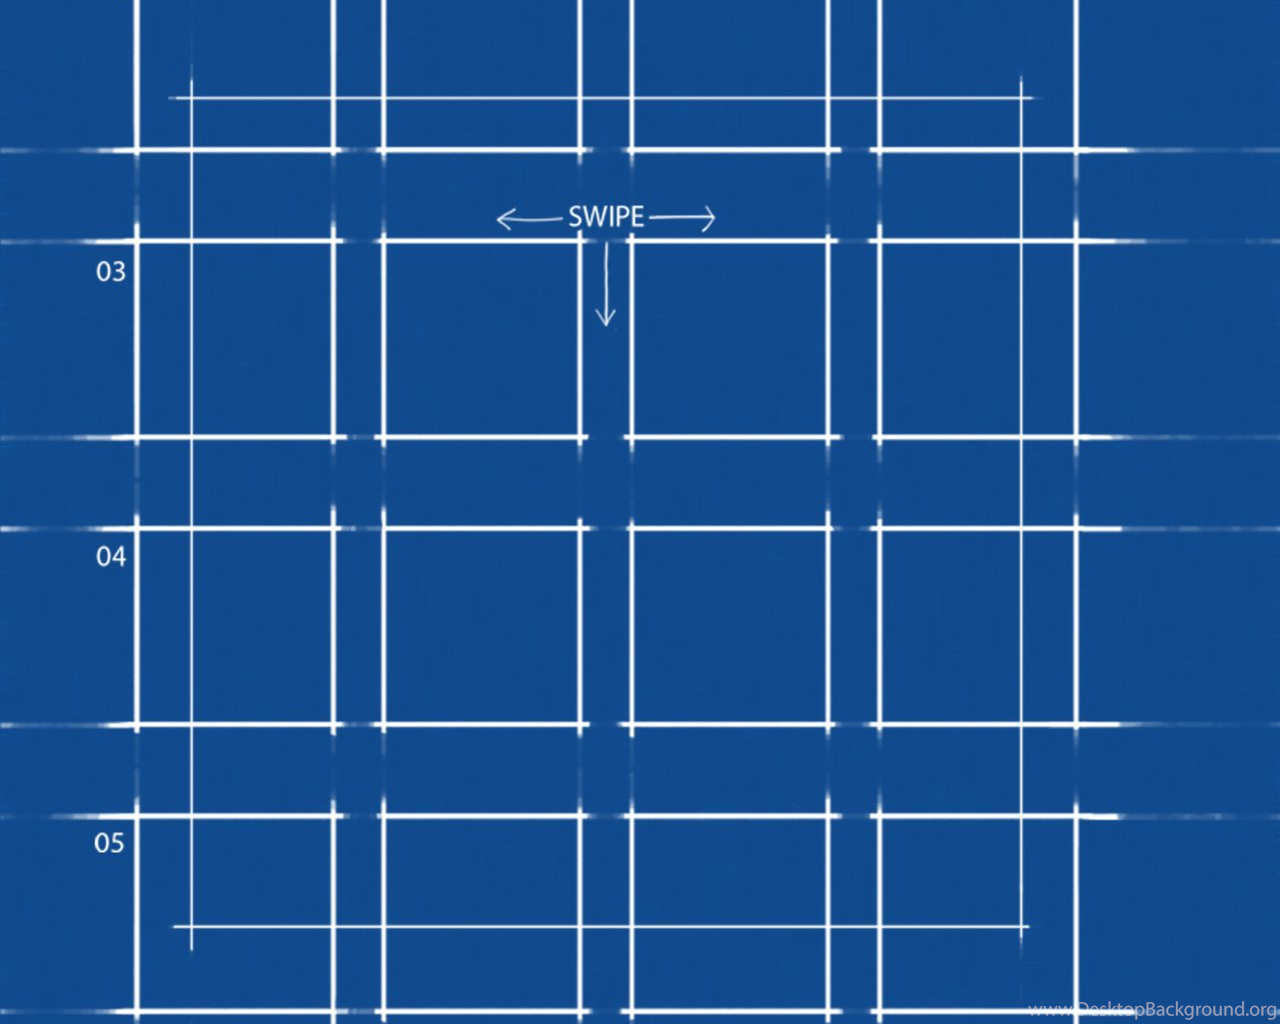 Simple Iphone Blueprint Wallpaper - 474370_official-blueprint-wallpapers-for-ios-7-parallax-by-mtnbikerbrad-on_1280x2268_h  Image_193253.png